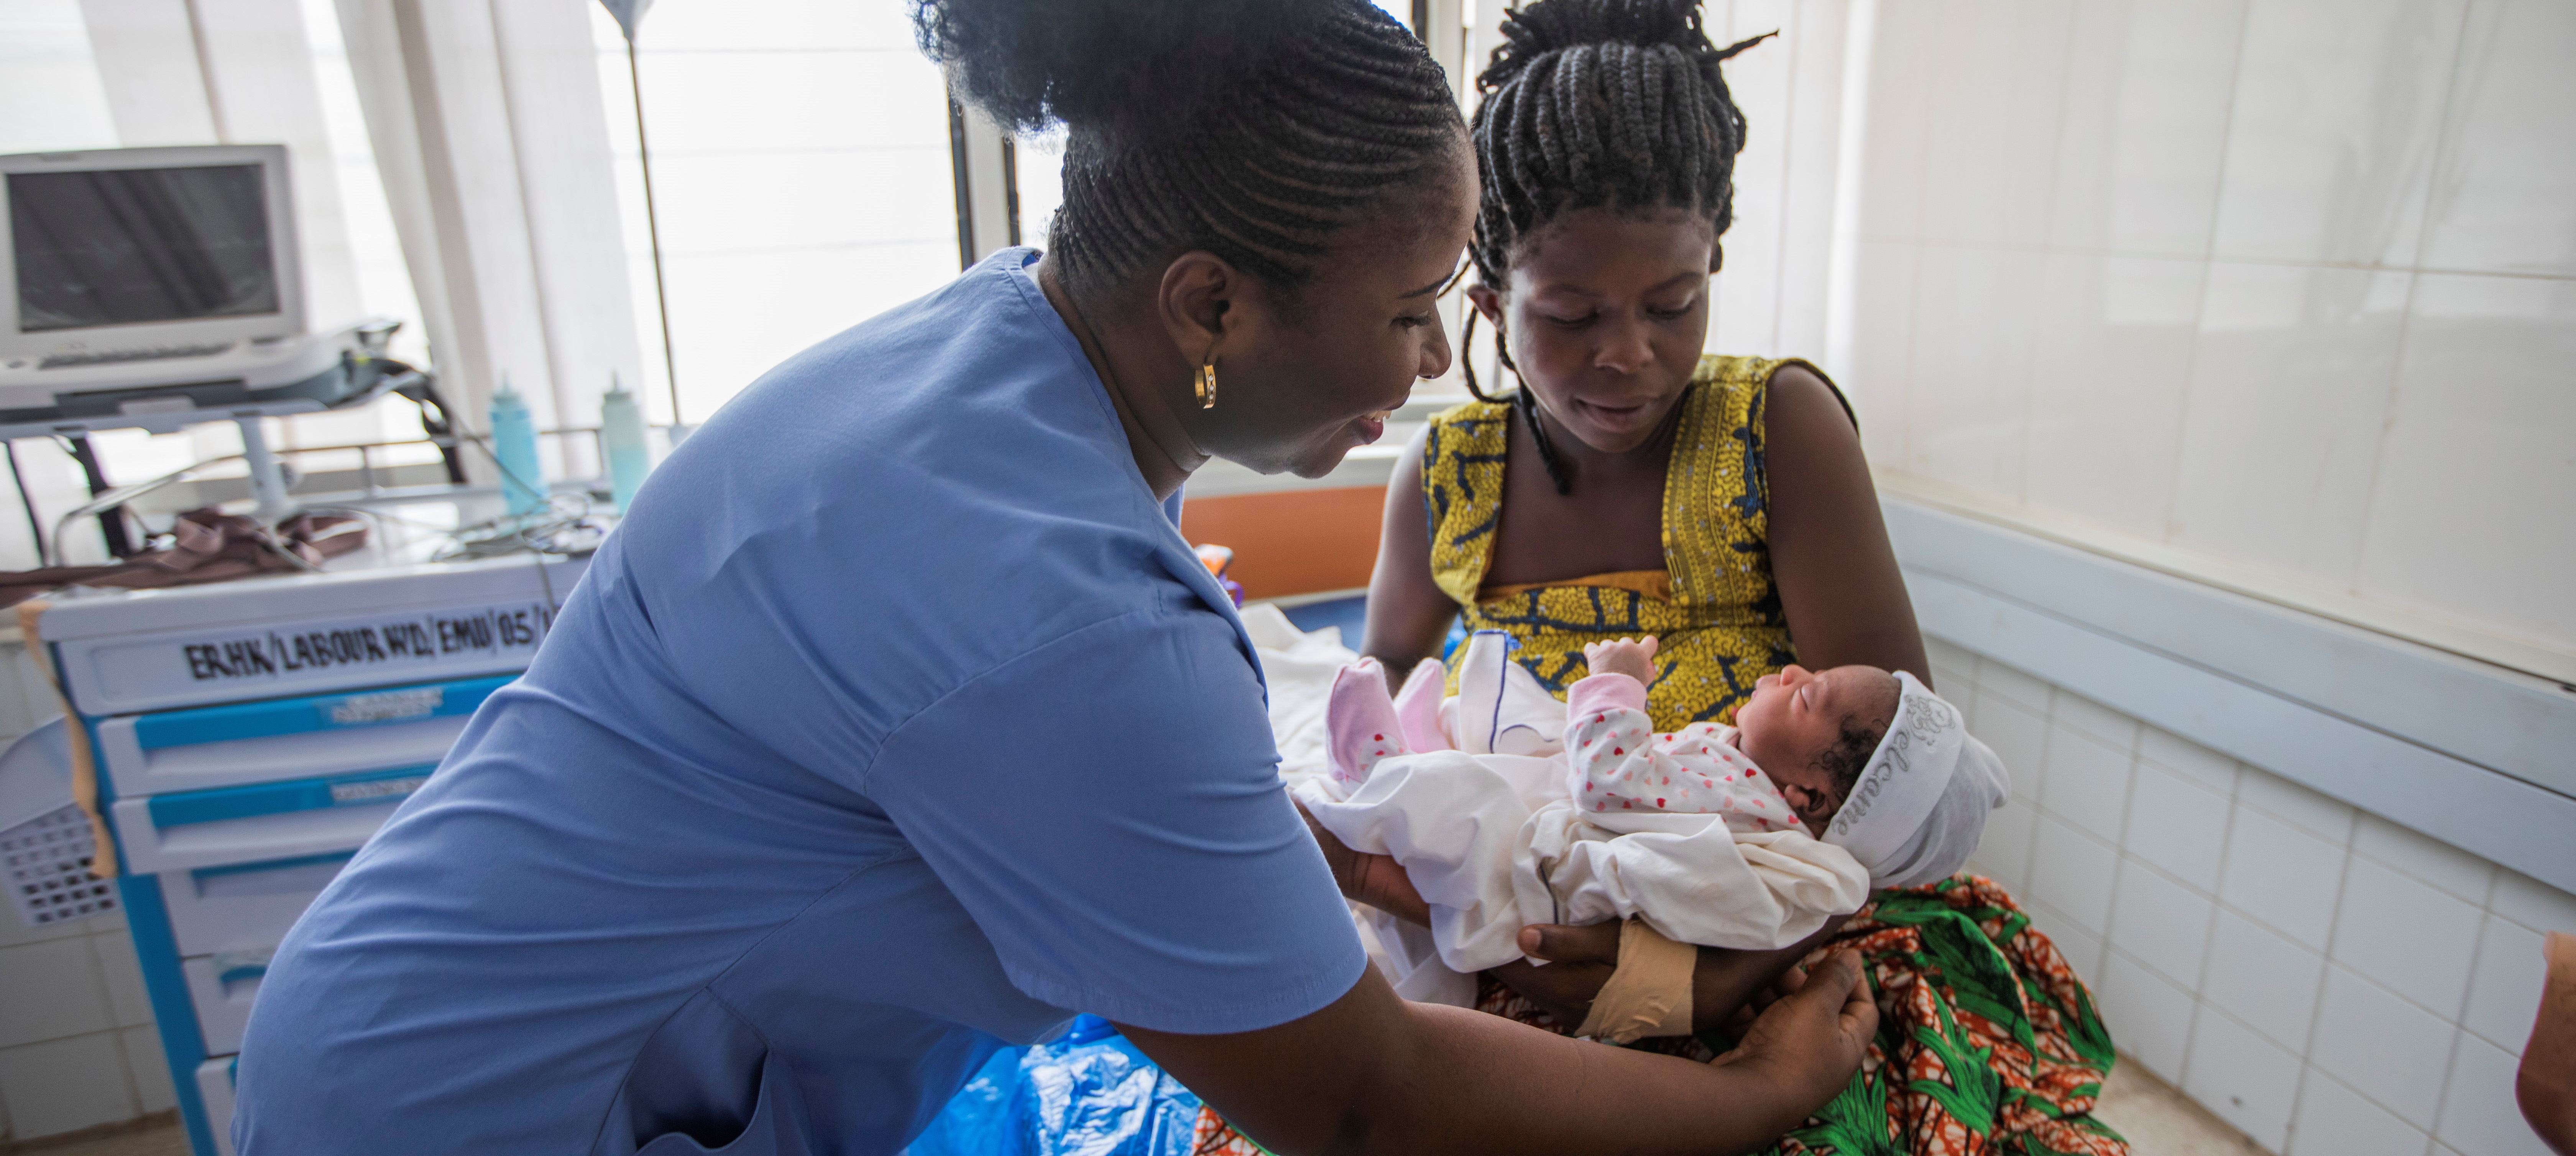 Ghanaian Doctor hands newborn baby to mother on hospital bed